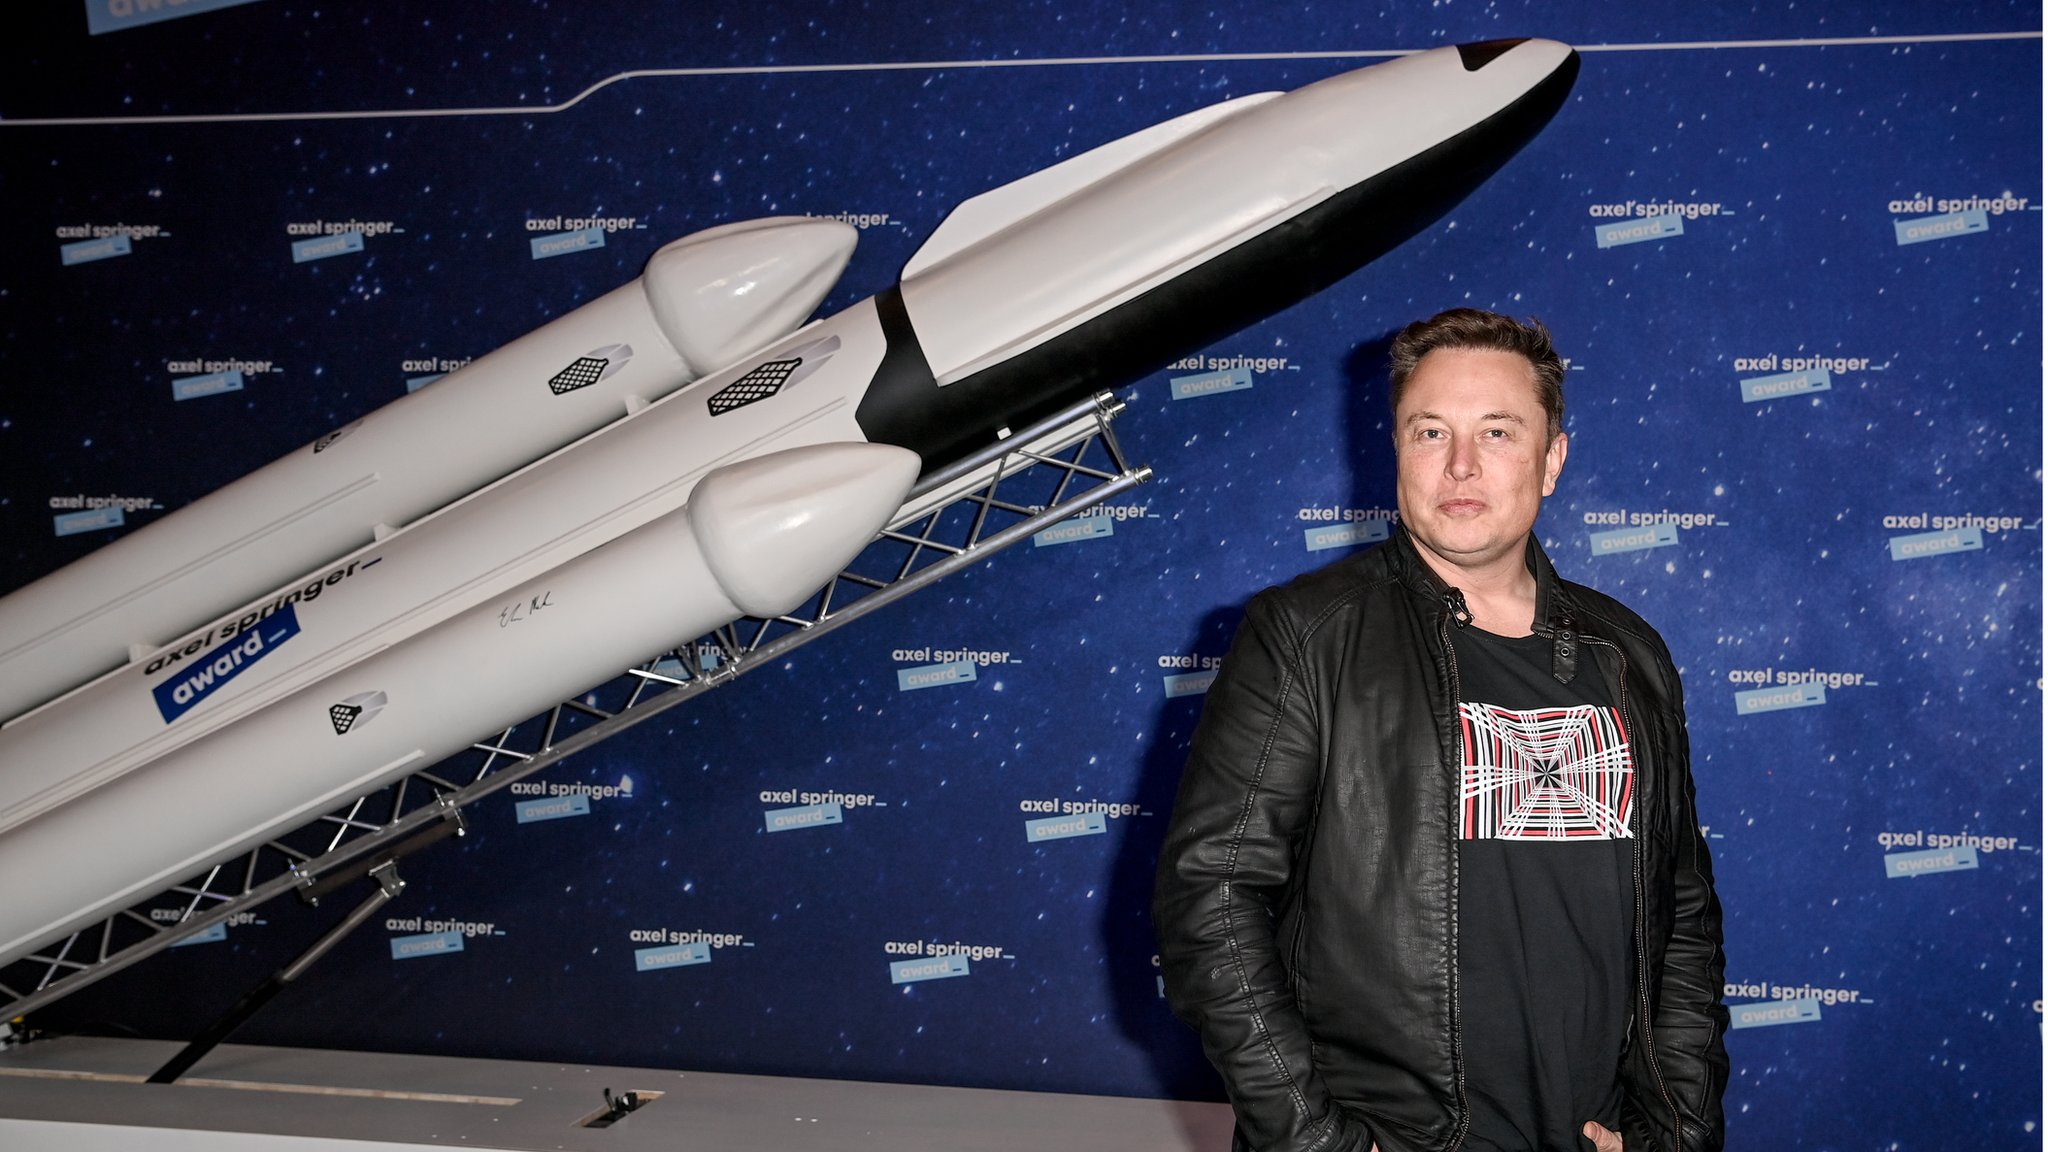 SpaceX Valuation Jumps by 60% to $74 Billion Following $850 Million Funding Round brandspurng